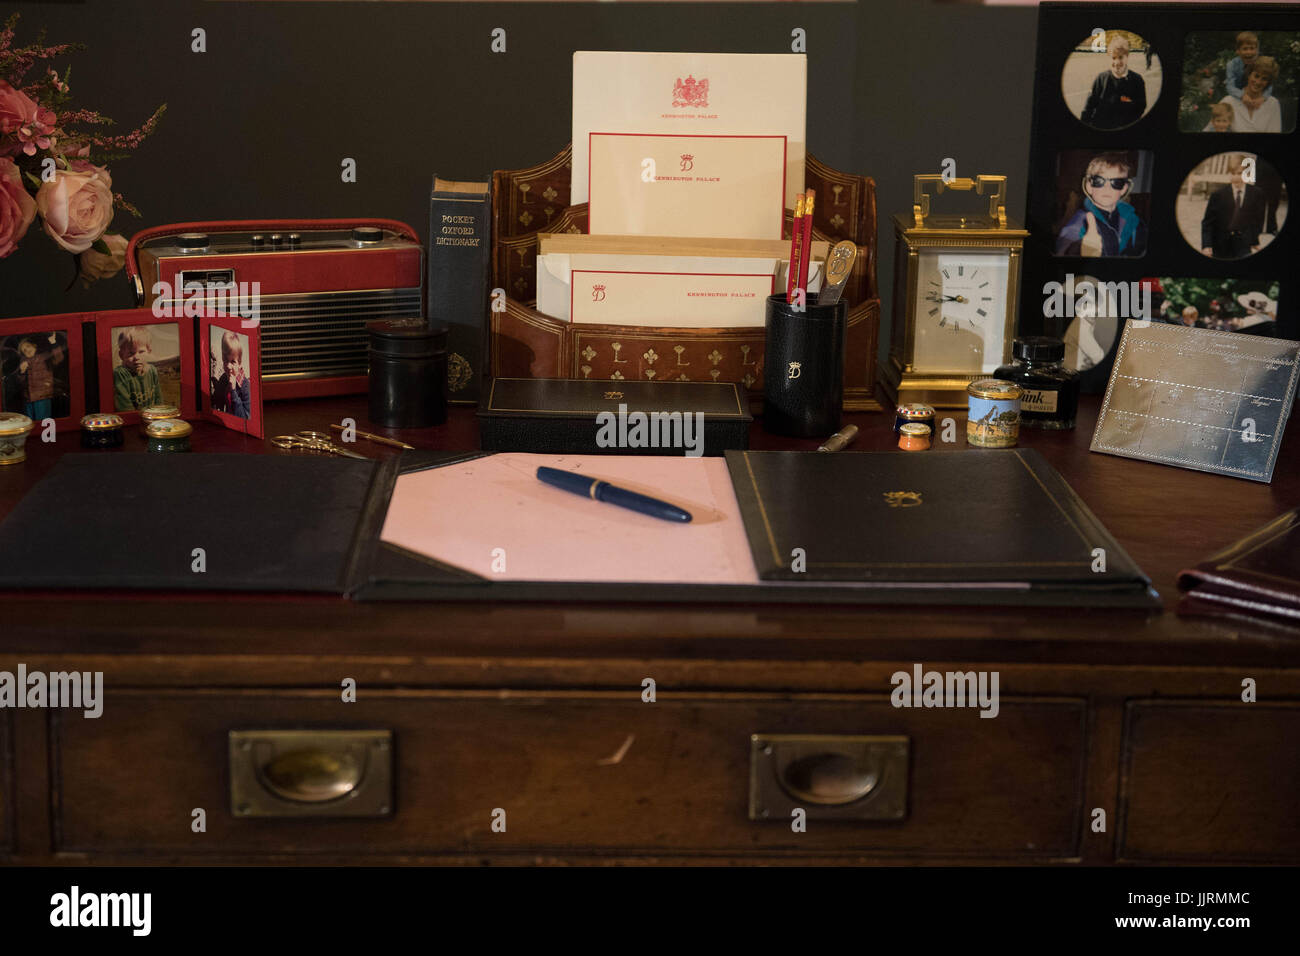 Items On The Desk From The Kensington Palace Sitting Room Of Diana,  Princess Of Wales On Show During A Preview For The Royal Gifts Exhibition,  Which Is Part ...